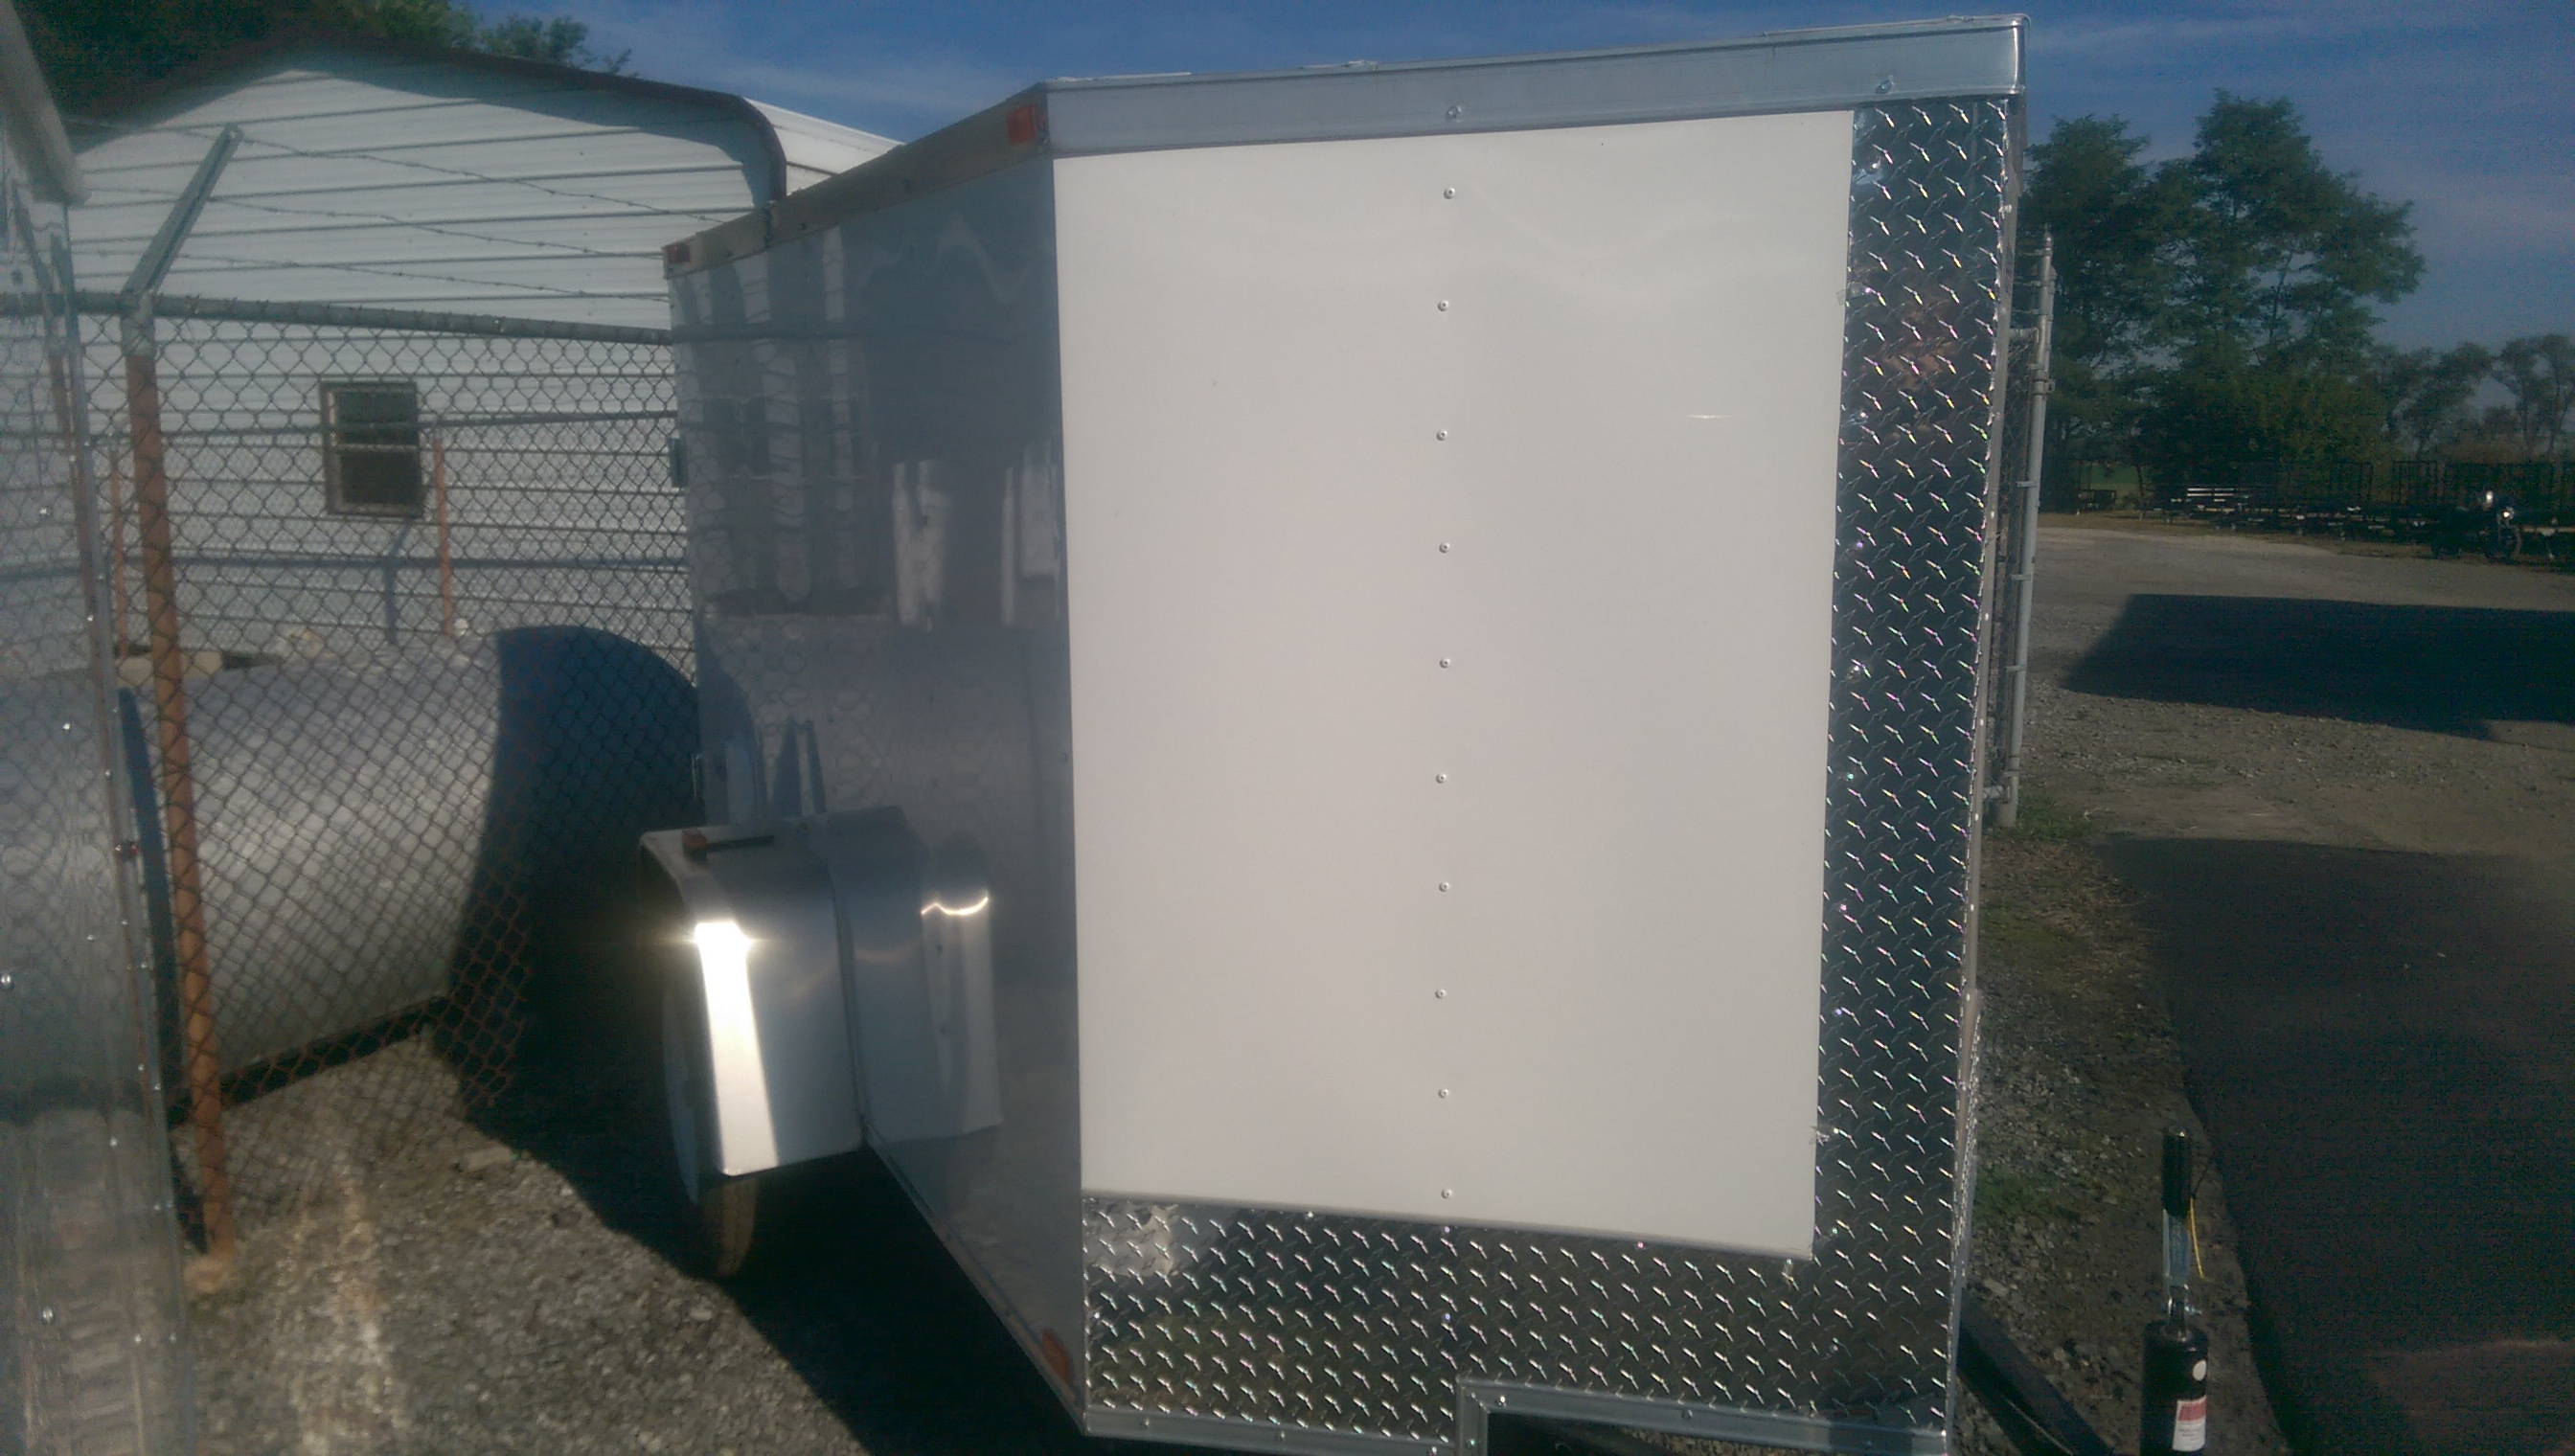 Quantity: 1  Single Rear Door with Bar Lock Plywood Flooring Rock Guard Interior Height  - 5' Aluminum Fenders Aluminum Exterior 4-Way Plug  <strong>Cash Price: $2,660</strong>  *Full Purchase Price does not include Title Fees and Taxes *3% Credit Card Surcharge added to Credit Card Purchases  	Financing not available on Freedom Trailers